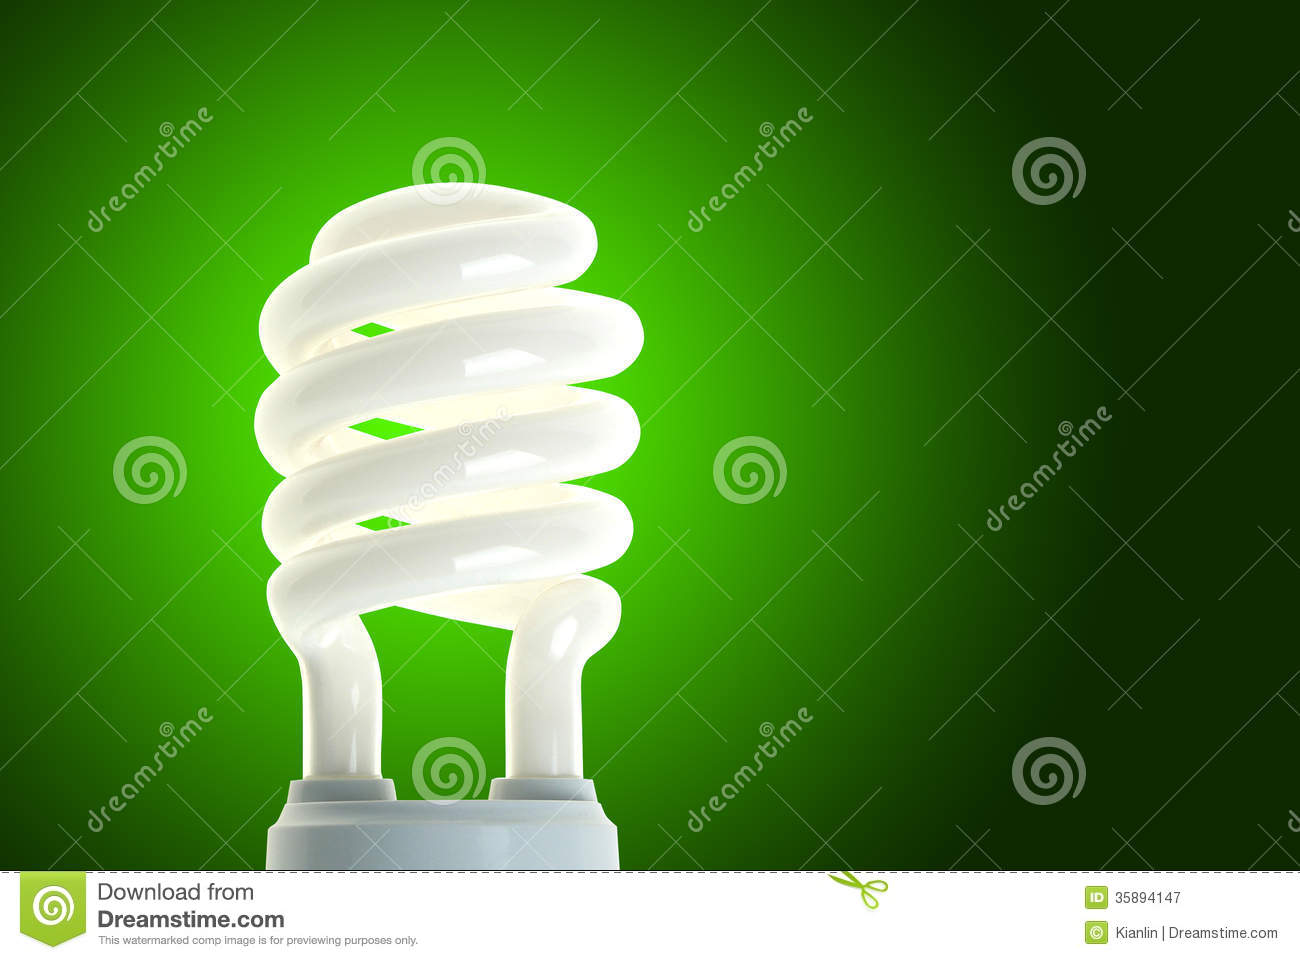 Power Saving CFL Bulb Green Energy Royalty-Free Stock ...